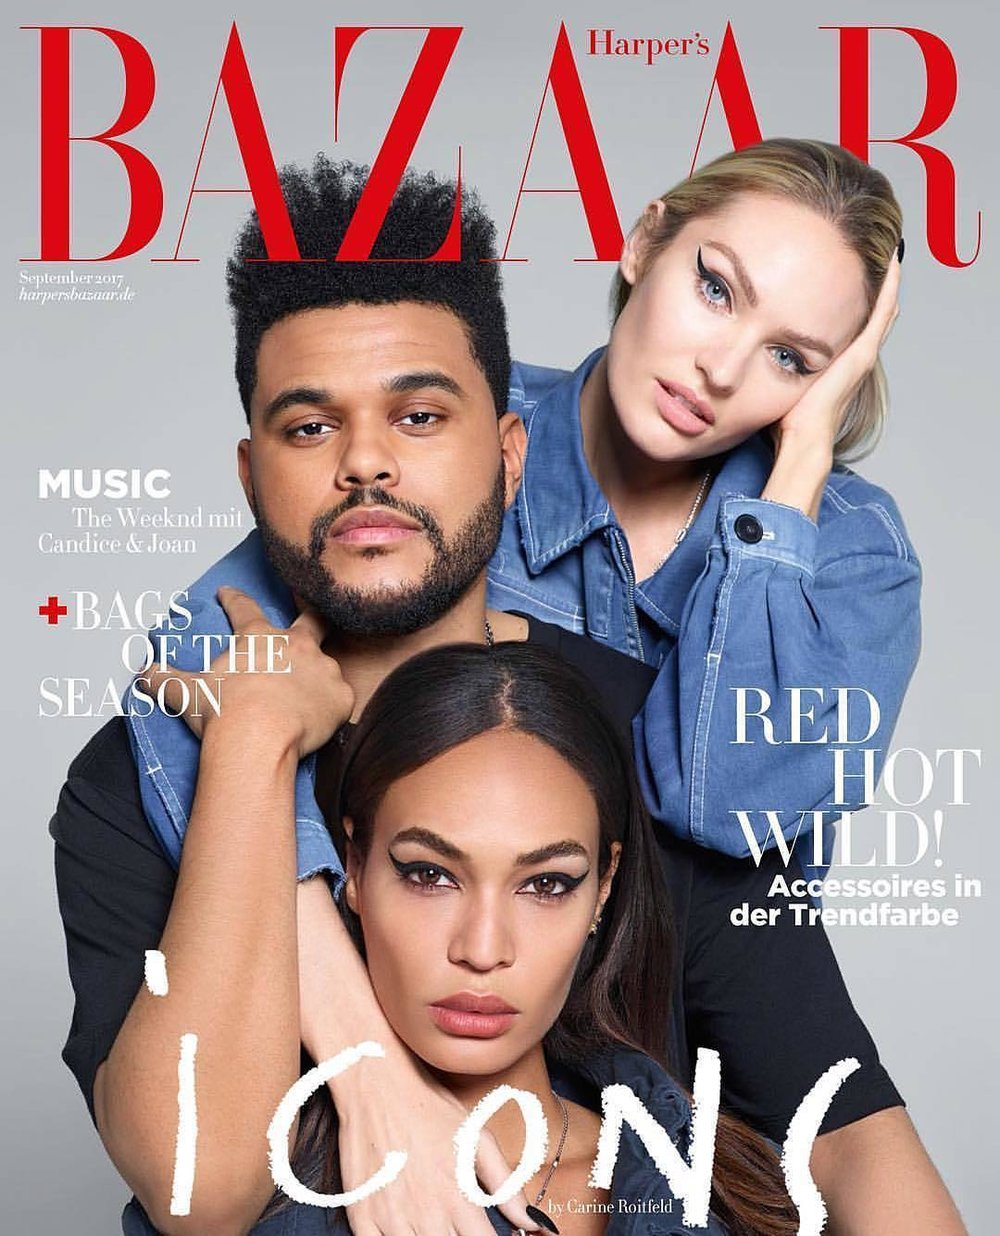 Harpers Bazaar September 2017 Germany.jpg